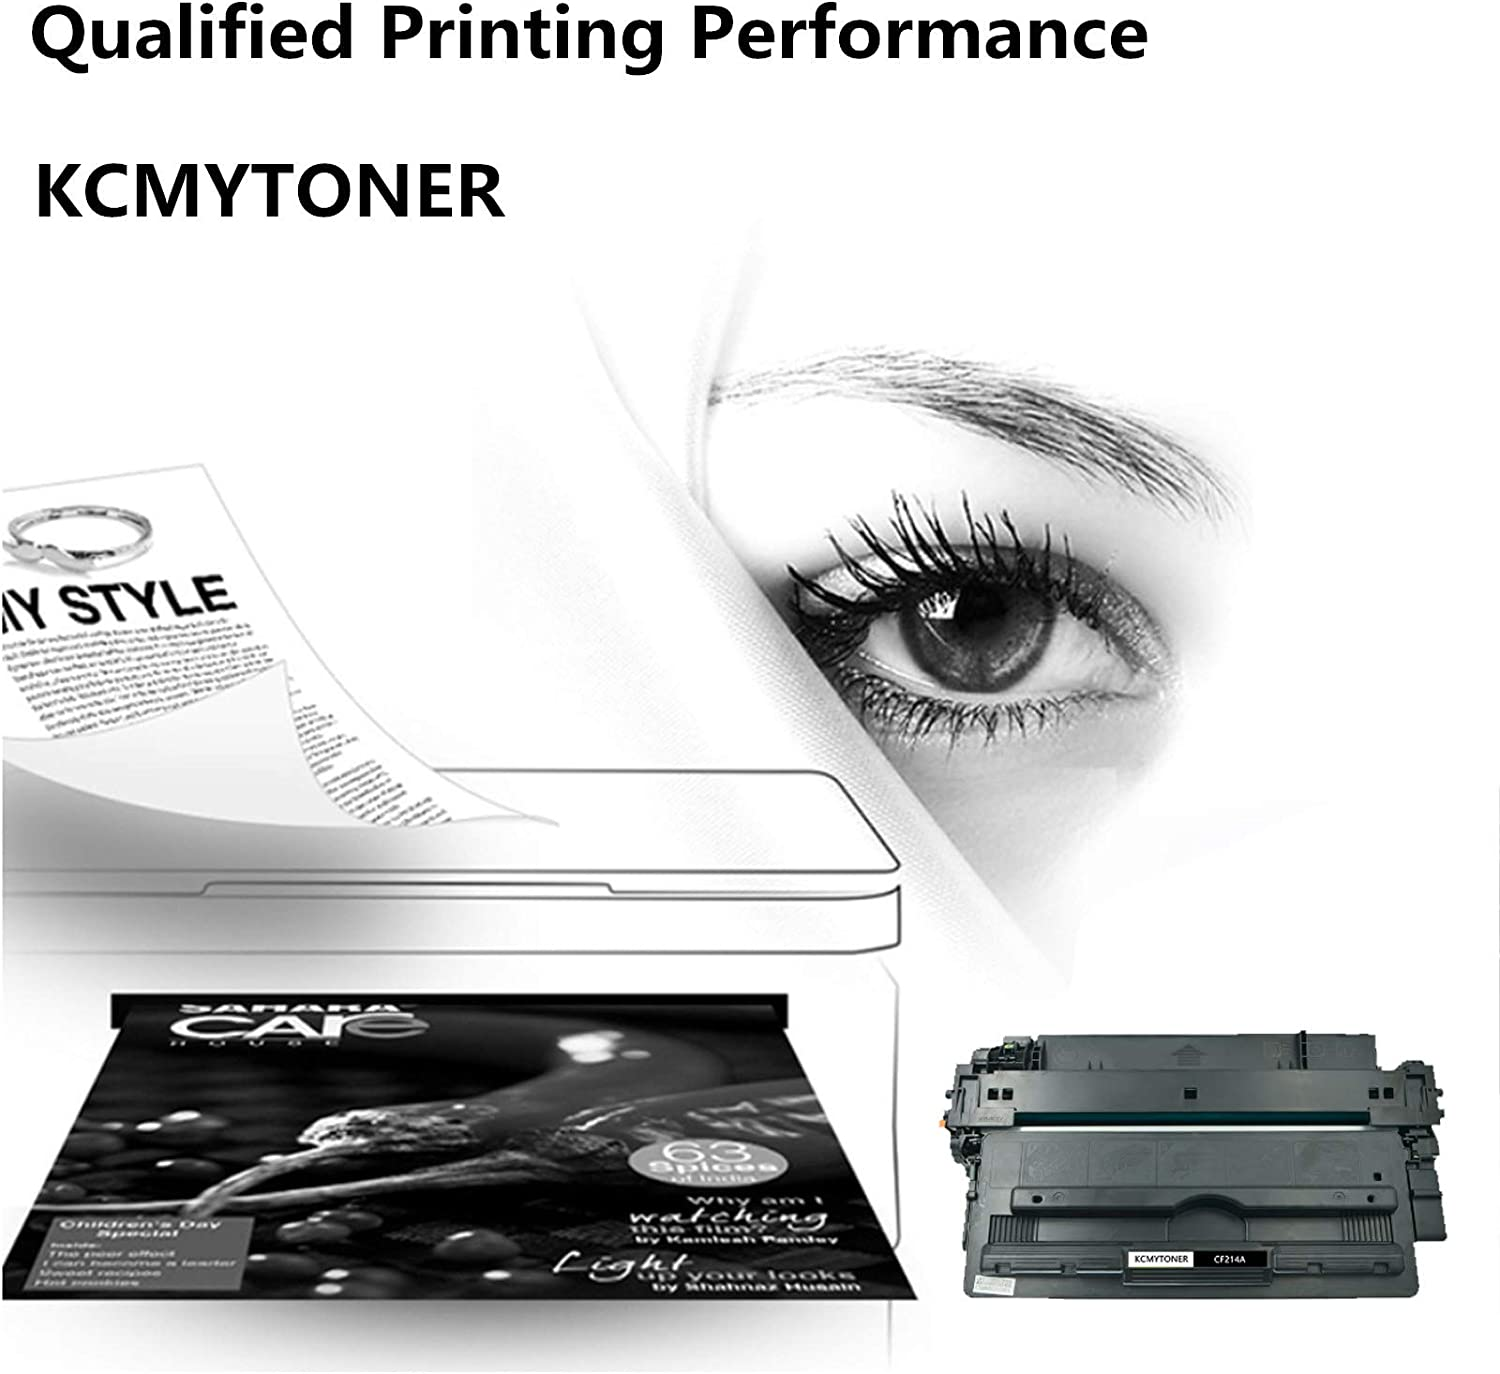 Black 1 Pack KCMYTONER Compatible Toner Cartridge Replacement for HP 14A CF214A Work with Laserjet Enterprise 700 M712 M725 M712dn M725X Series Printer